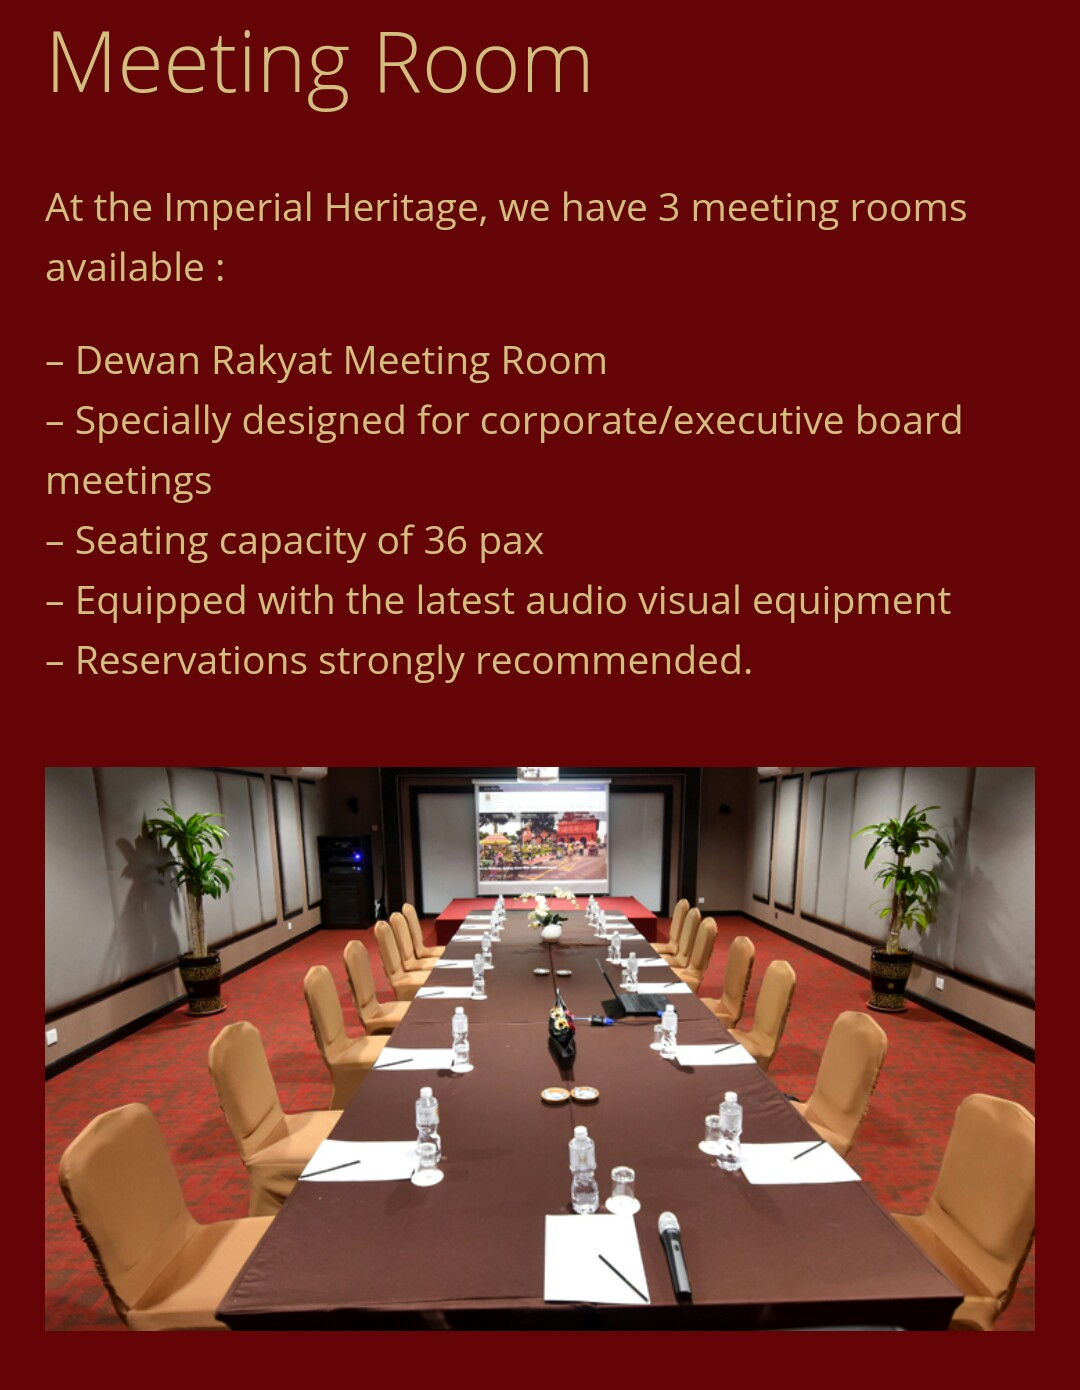 Hotel Imperial Heritage